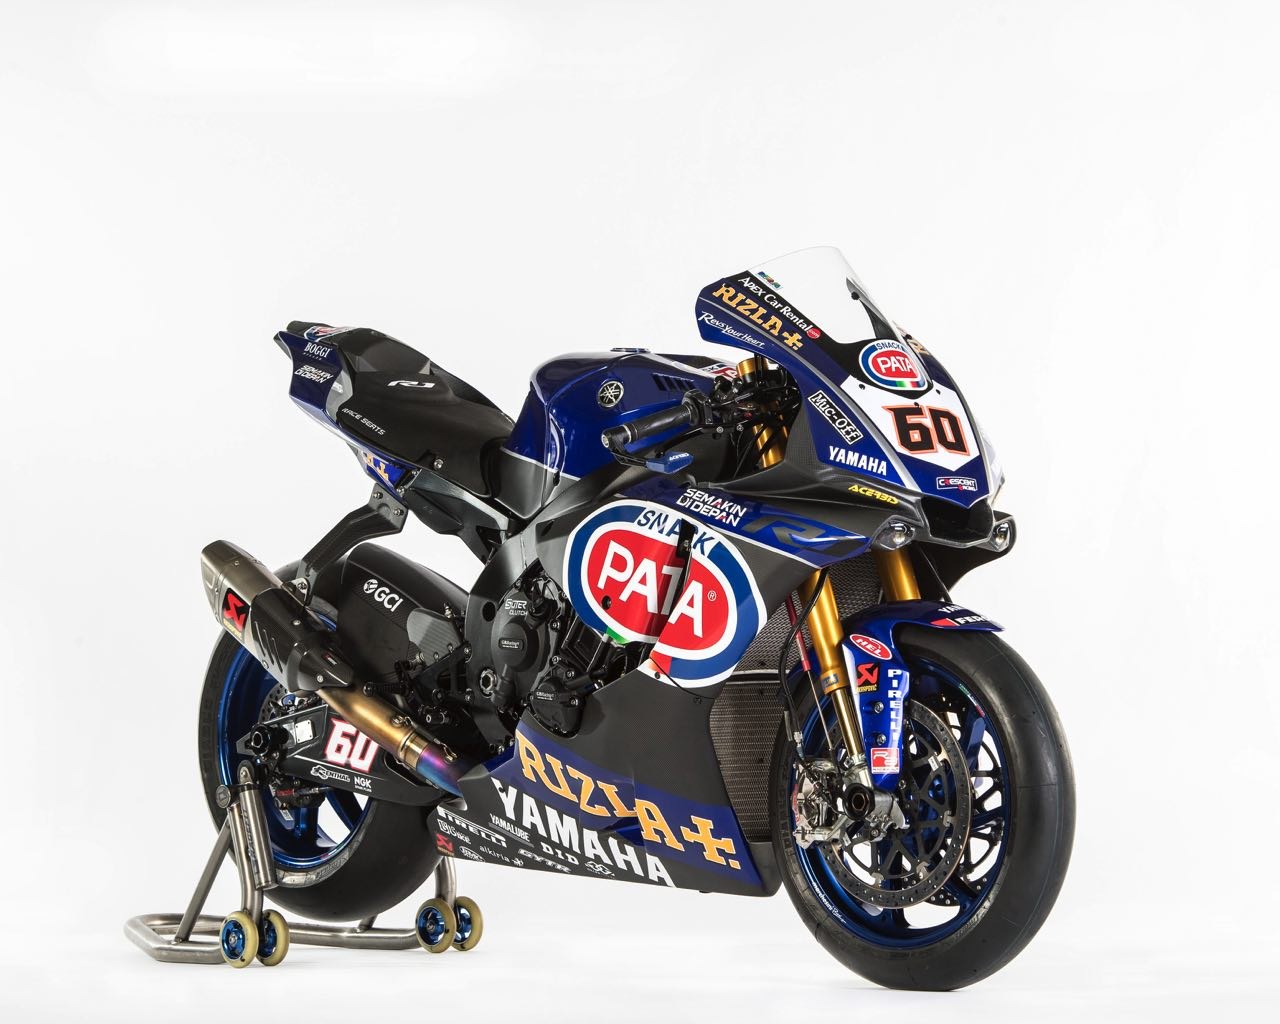 2018 Yamaha Official WorldSBK Team Launch | Michael van der Mark